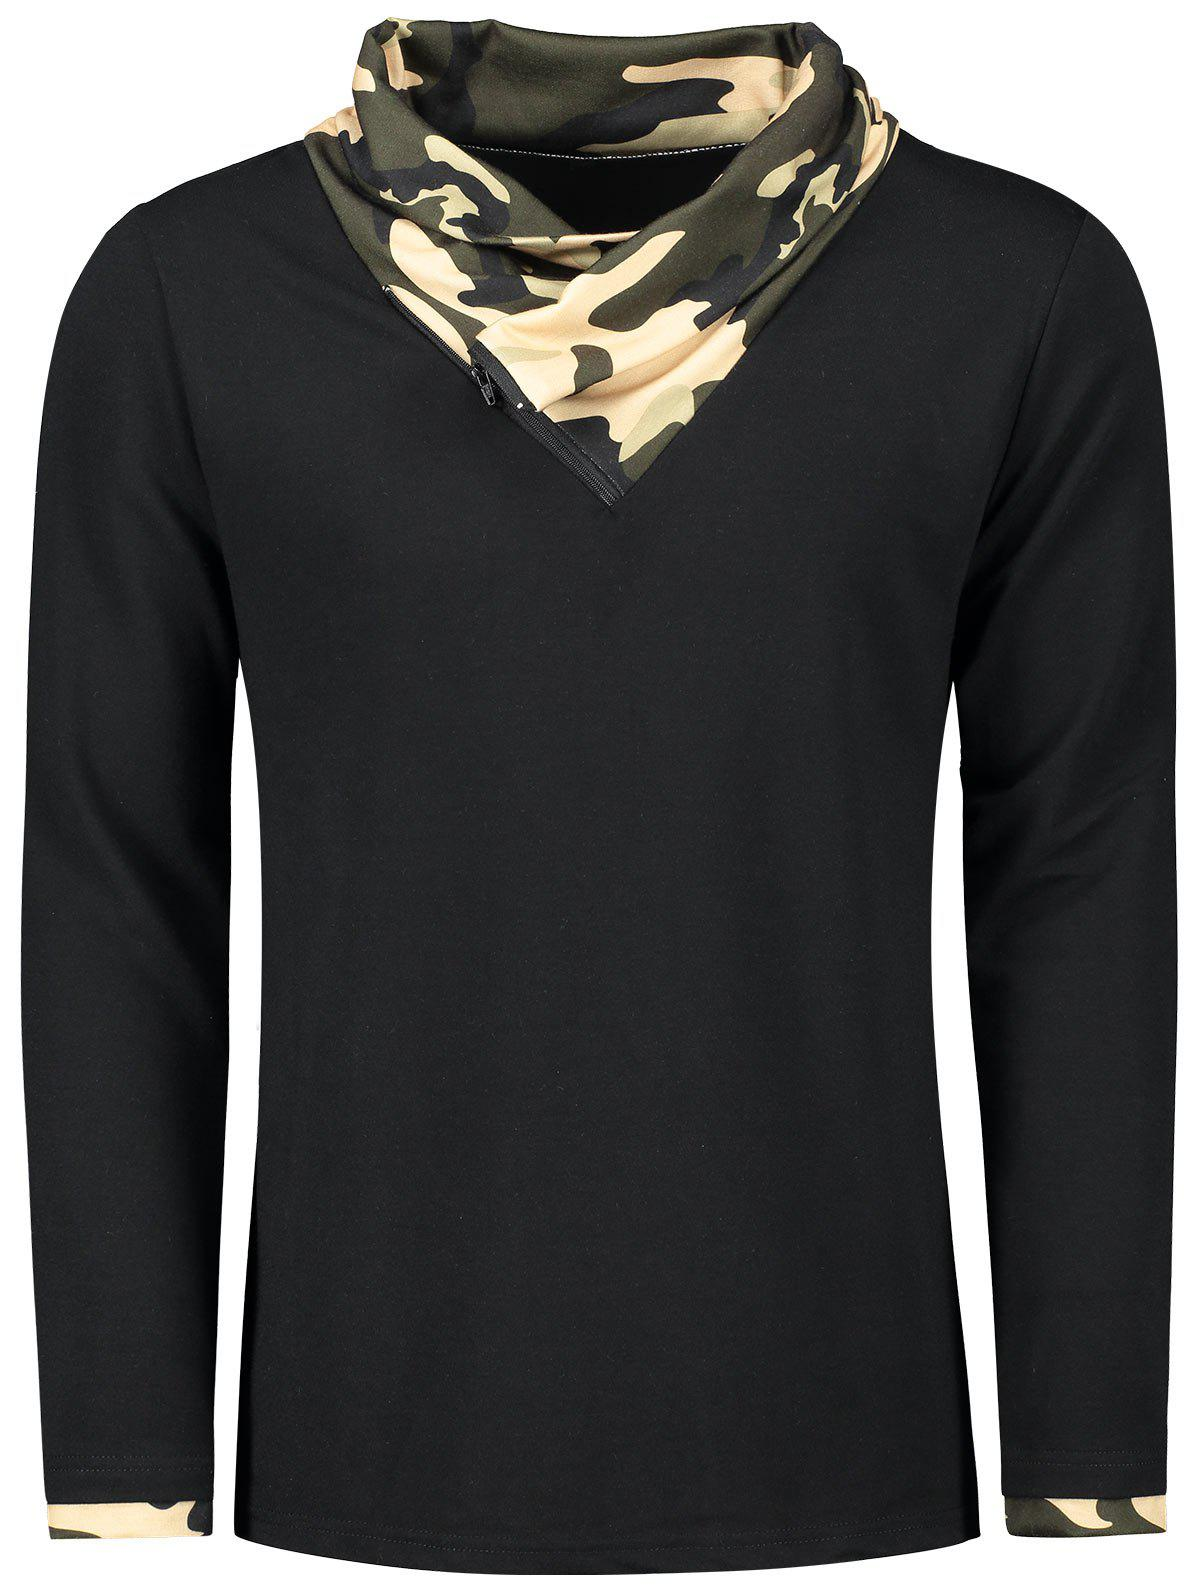 Hot Camouflage Heaps Collar Long Sleeve T-shirt